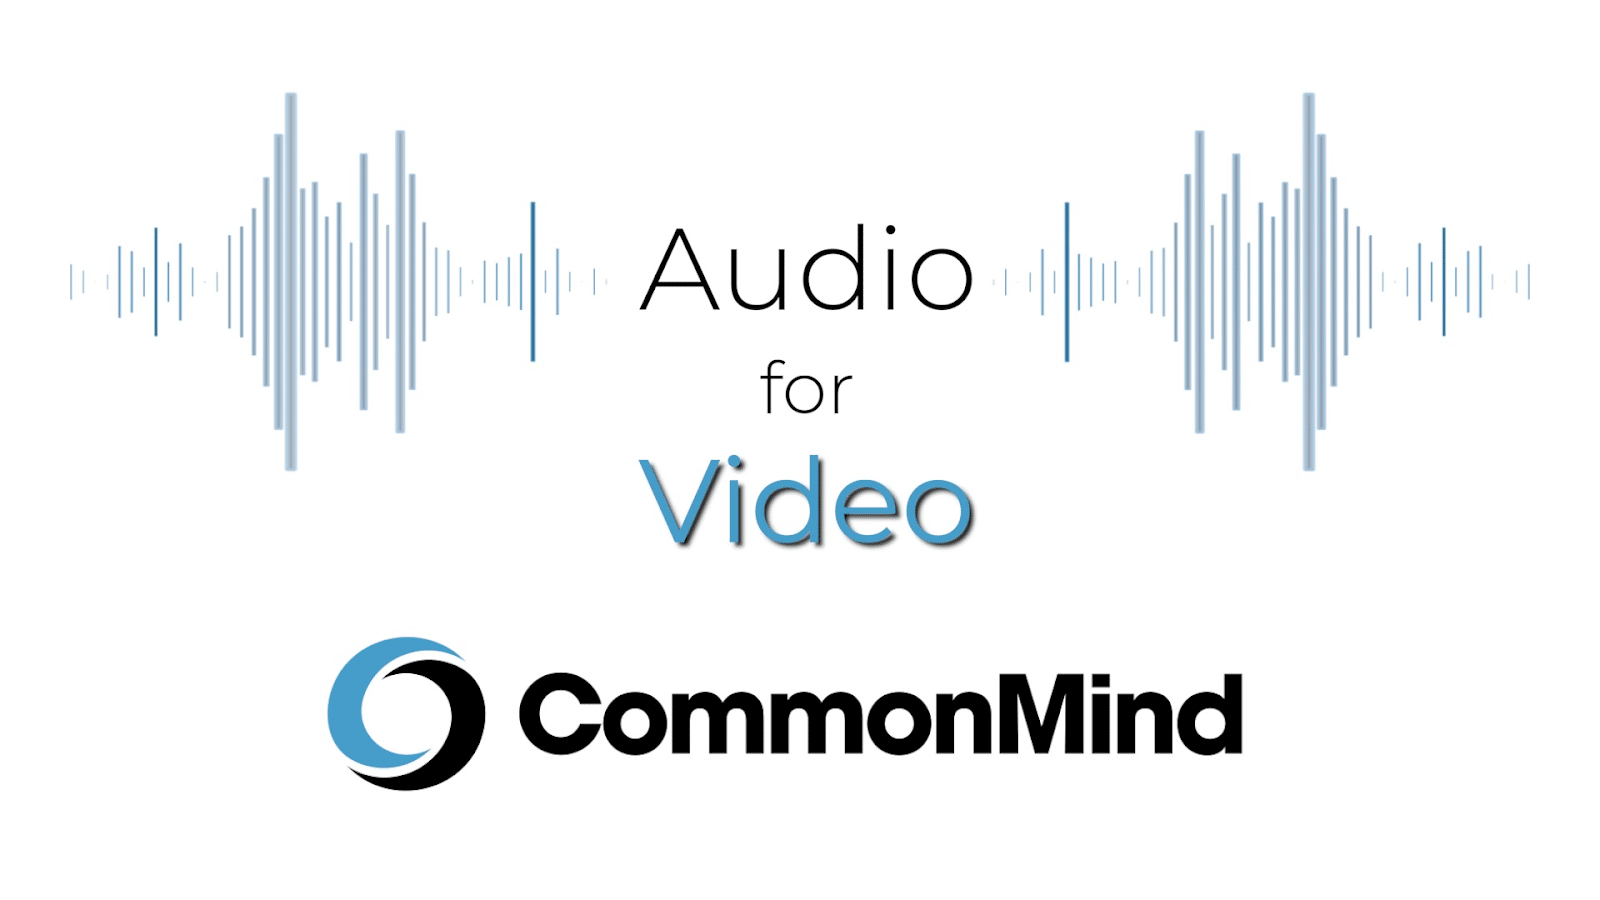 high-quality audio for video